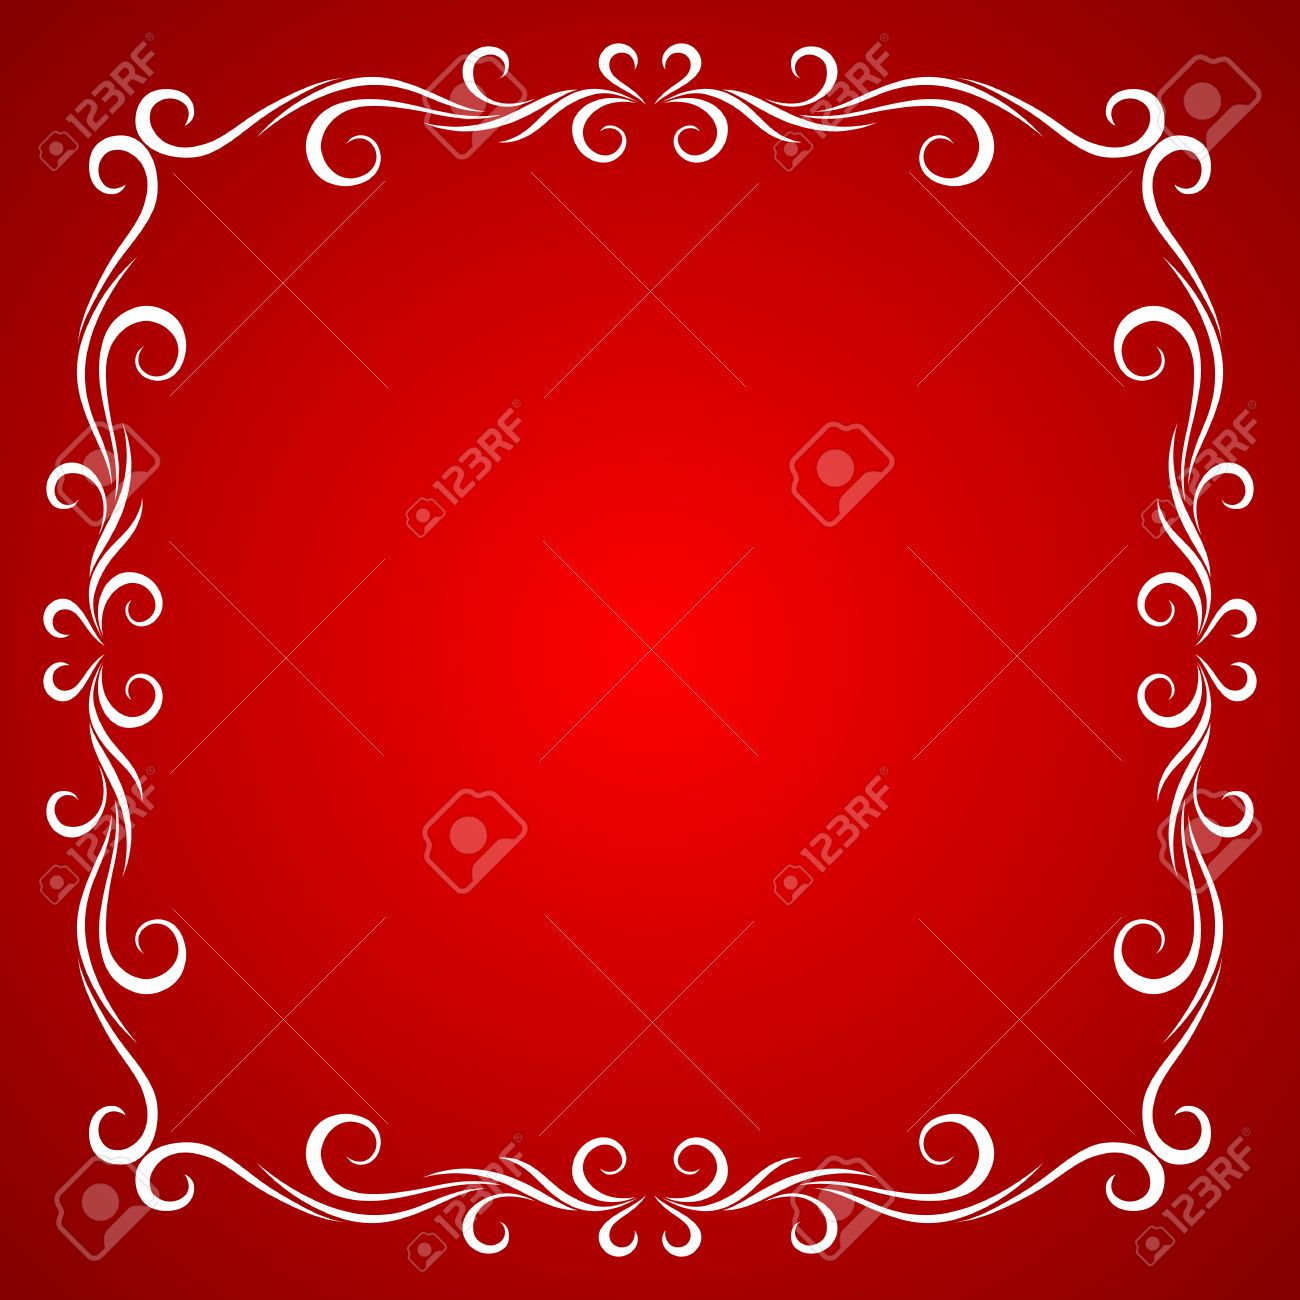 Vintage Frame Design For Greeting Card. Royalty Free Cliparts ...